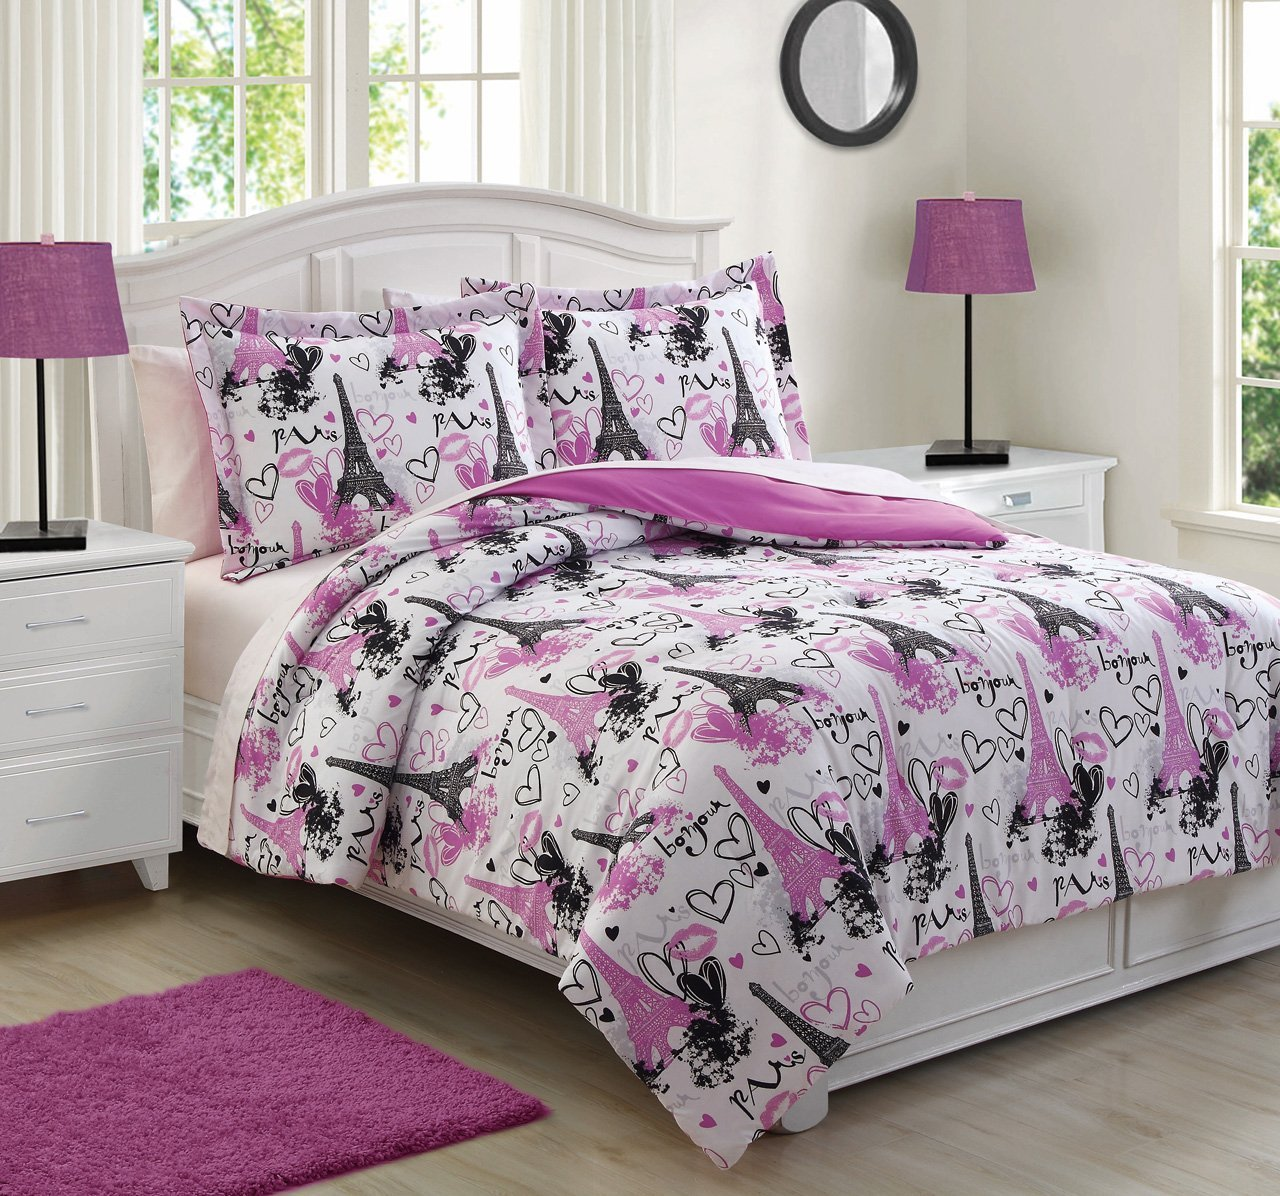 twin pictures to decor zozzy hash your and xl pink of comforter sets beautify home cute bedroom blush s